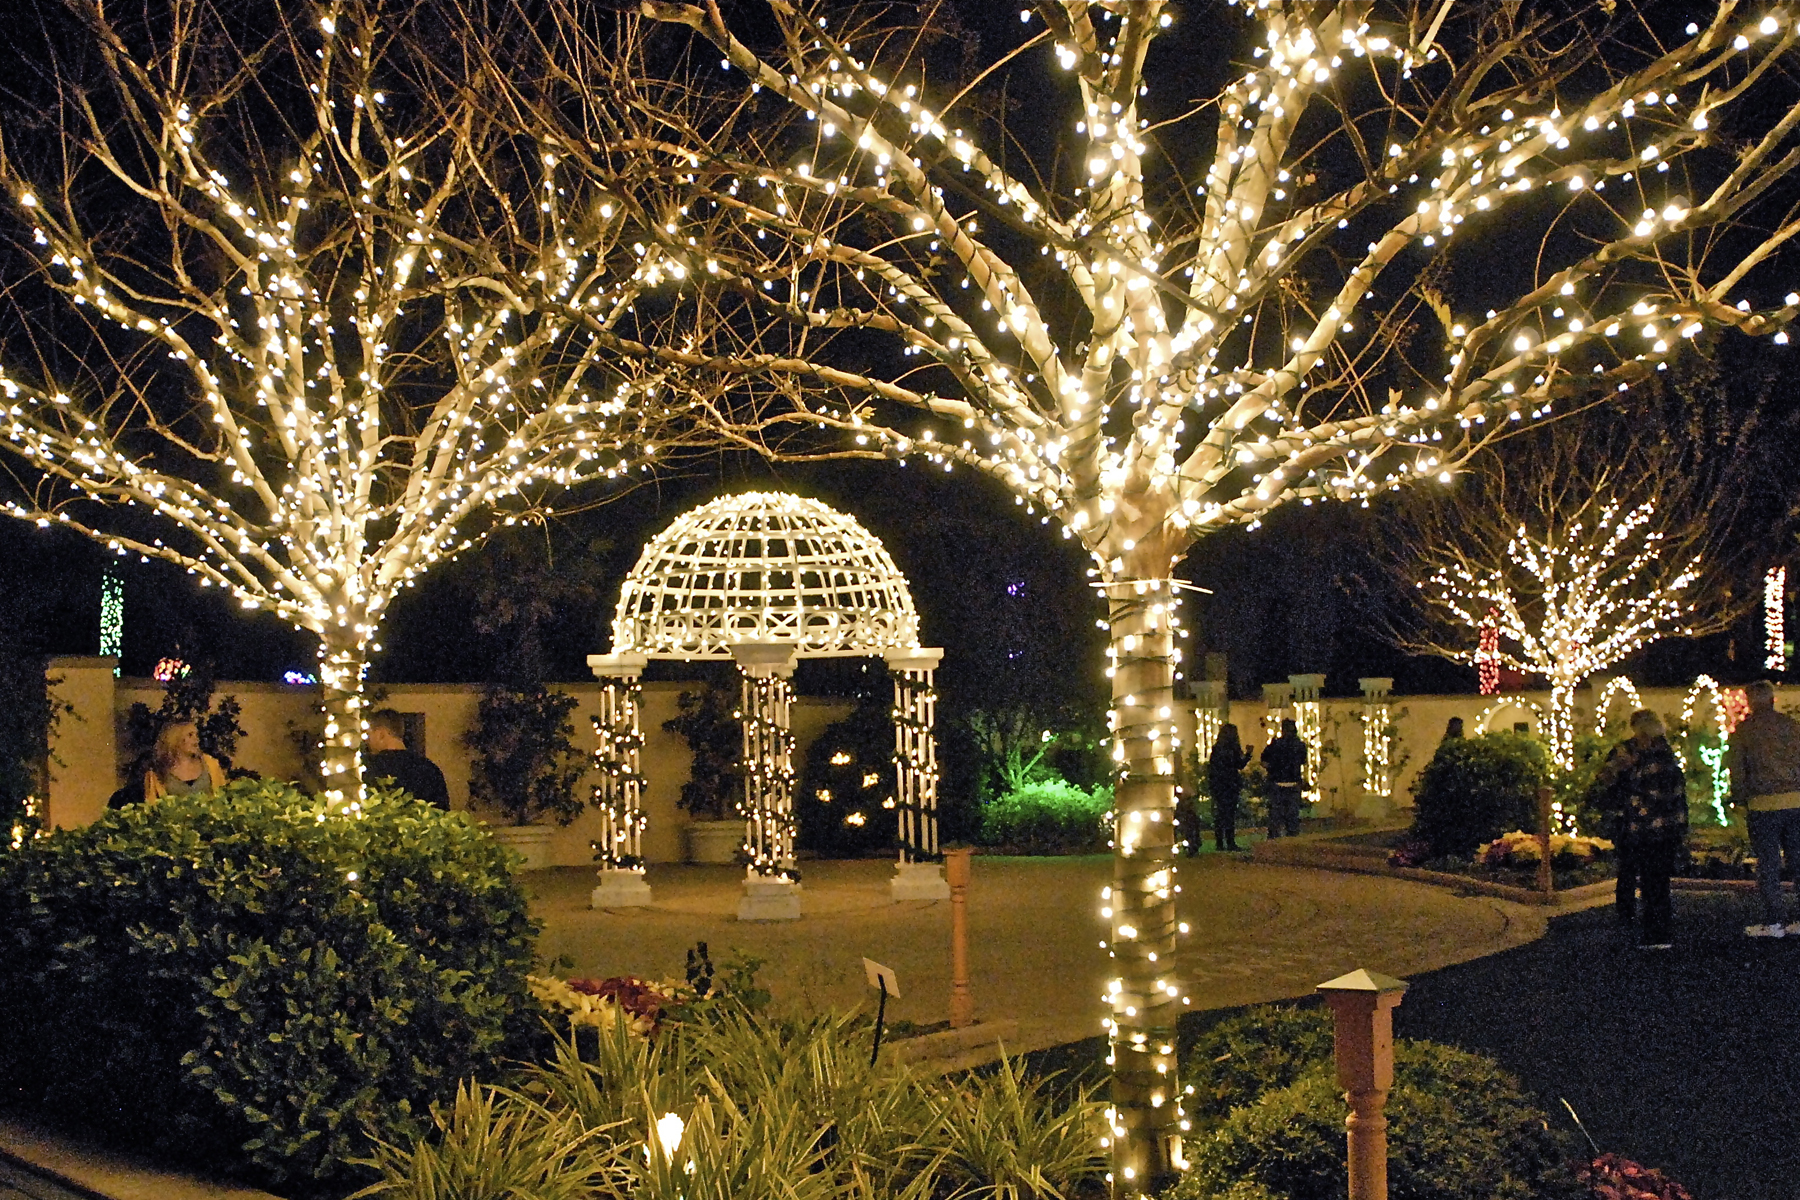 Holiday lights botanical gardens for Holiday lights botanical gardens